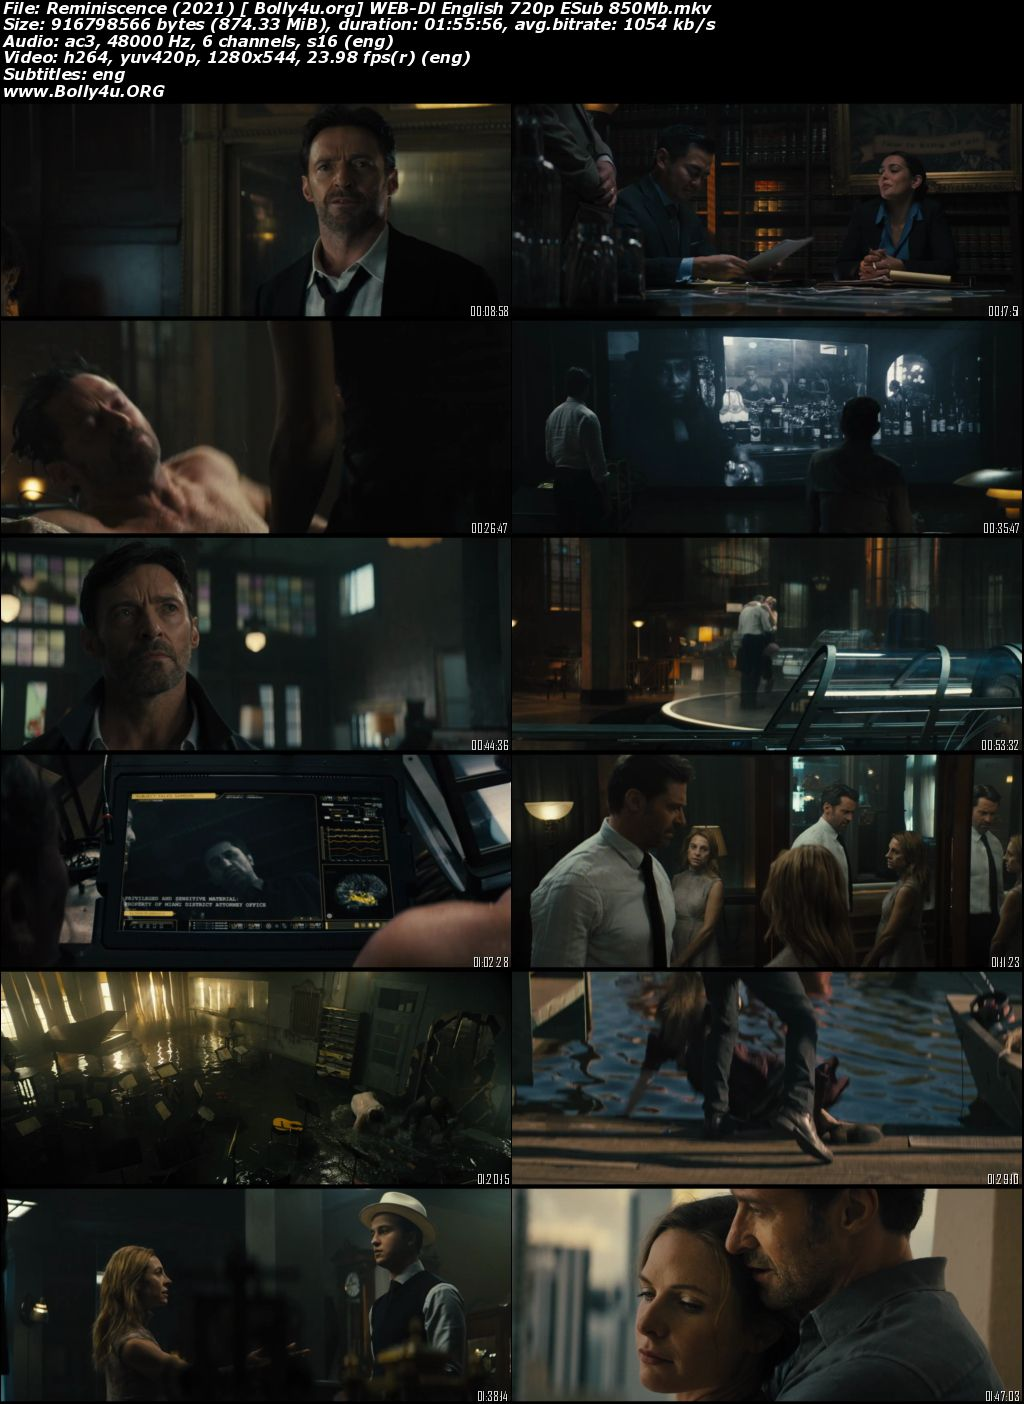 Reminiscence 2021 WEB-DL 350Mb English 480p ESubs Download